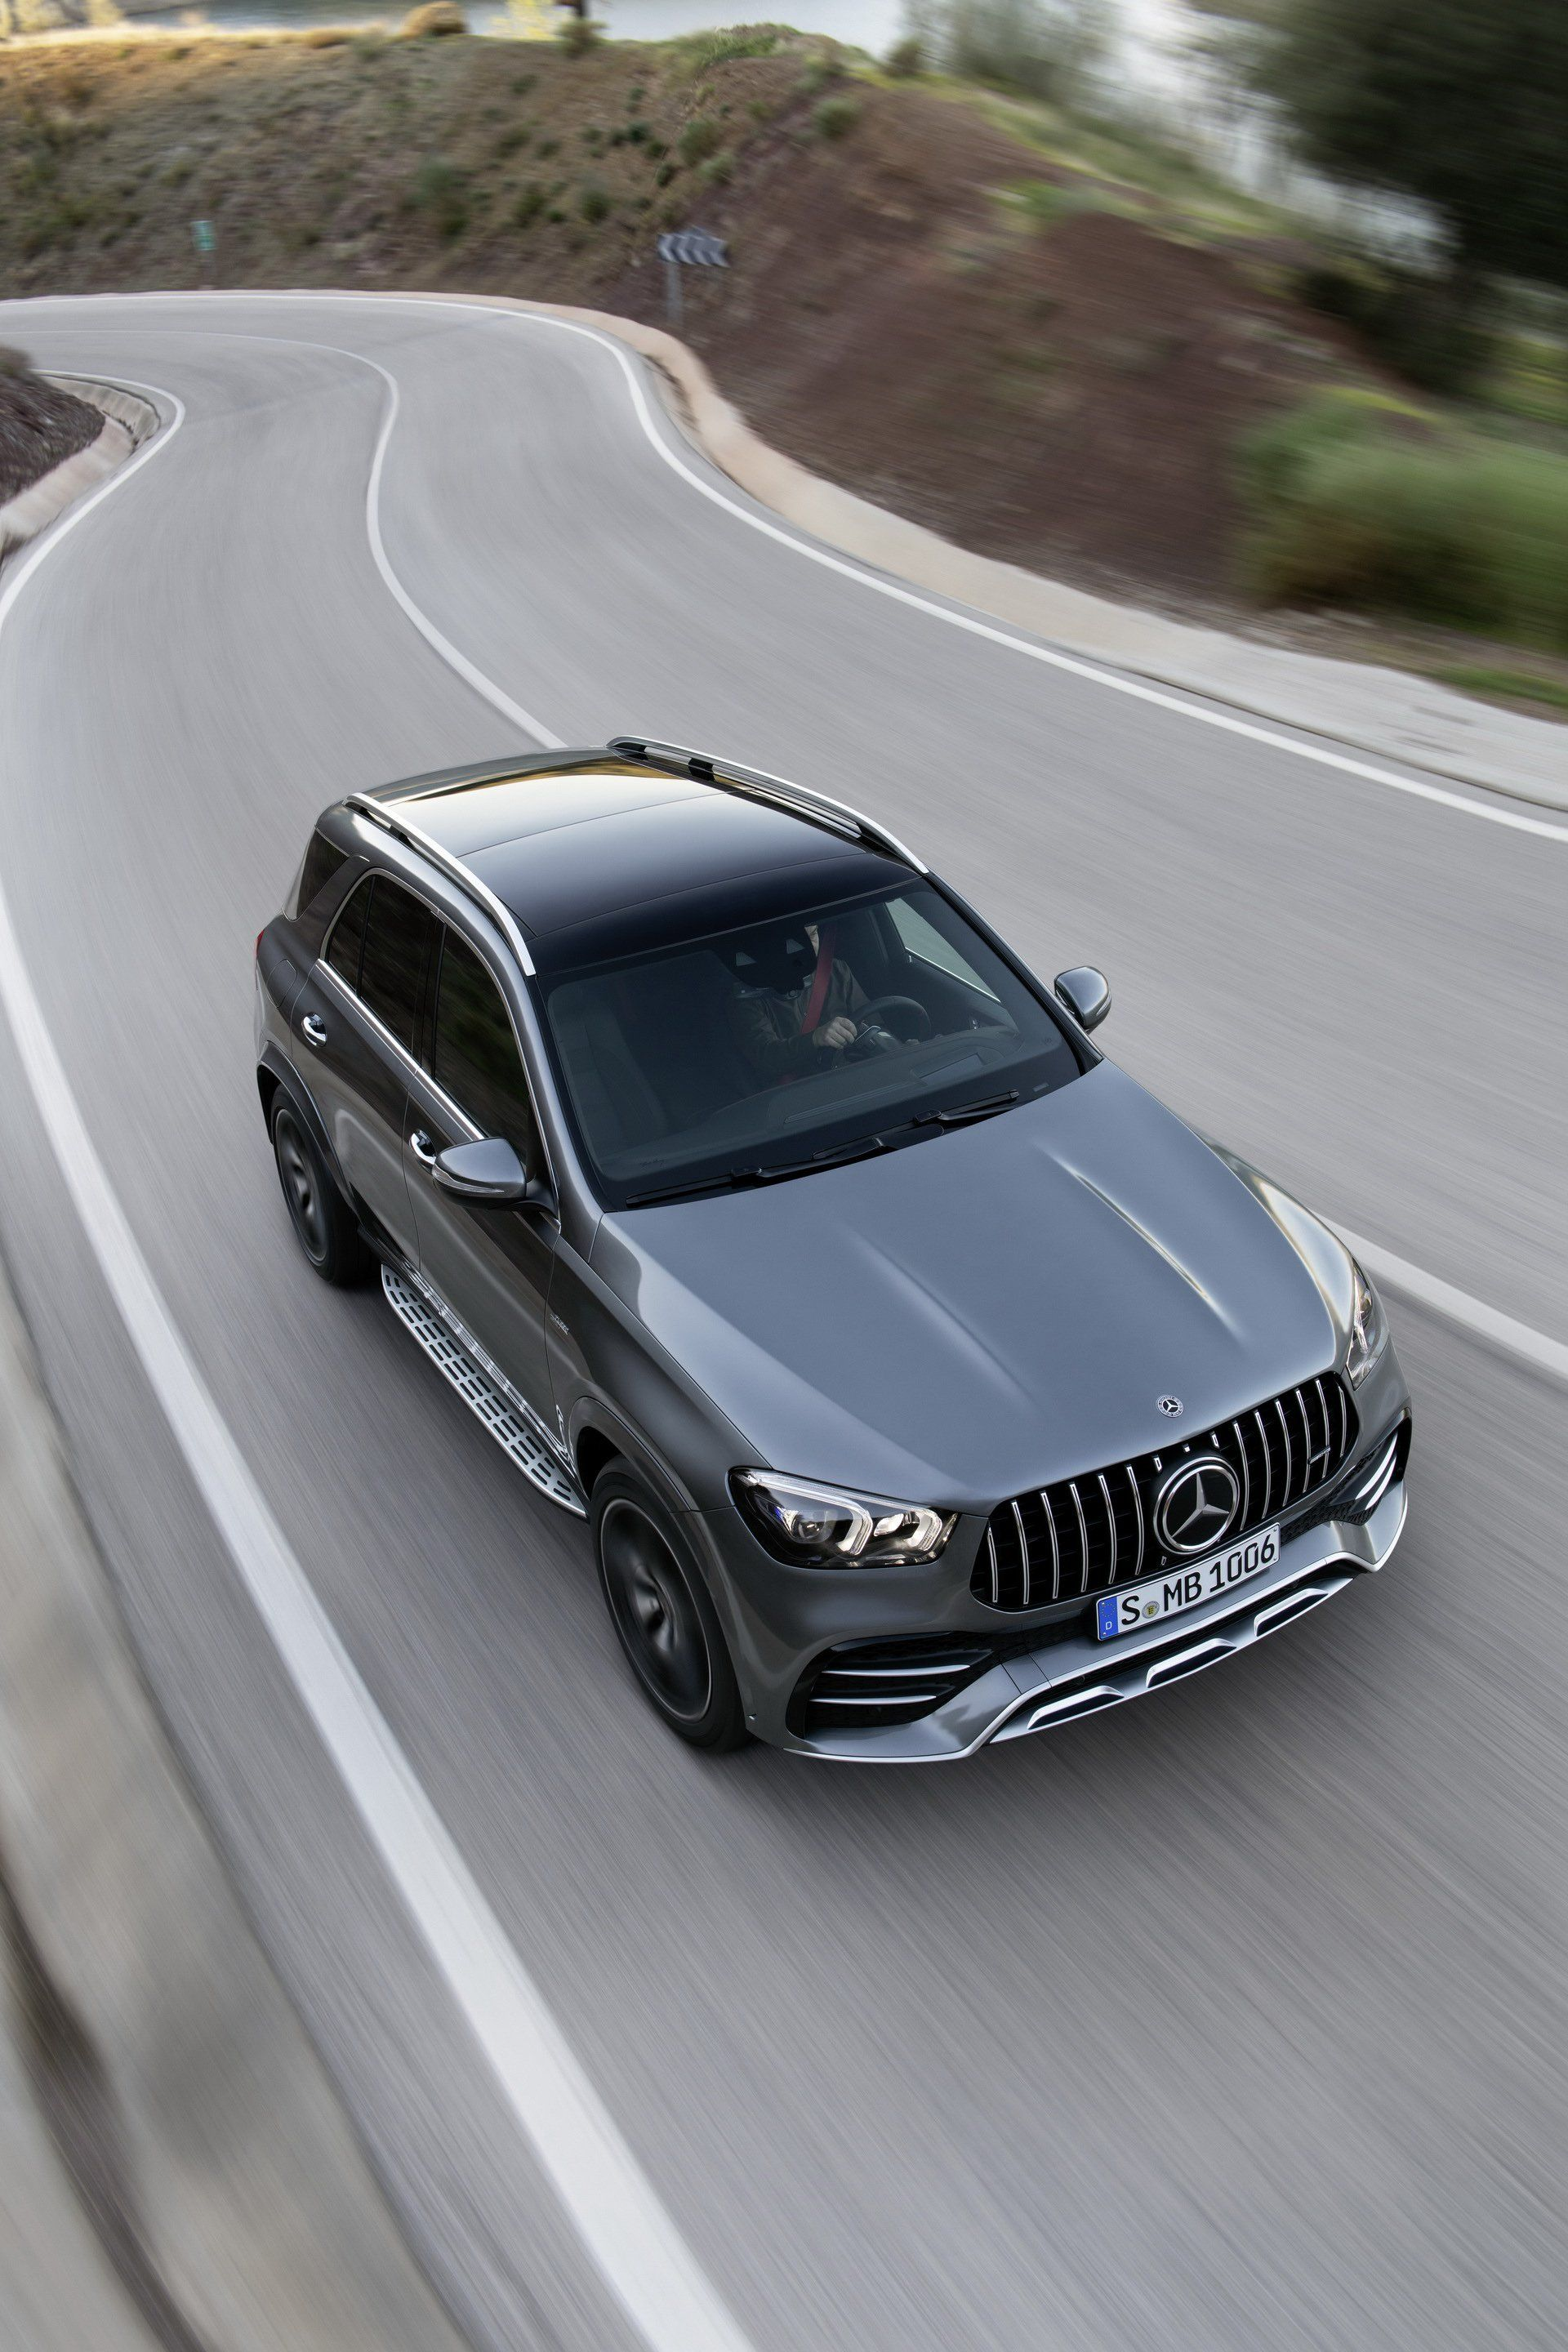 2020 Mercedes Amg Gle 53 4matic Has Straight Six With Twin Turbos